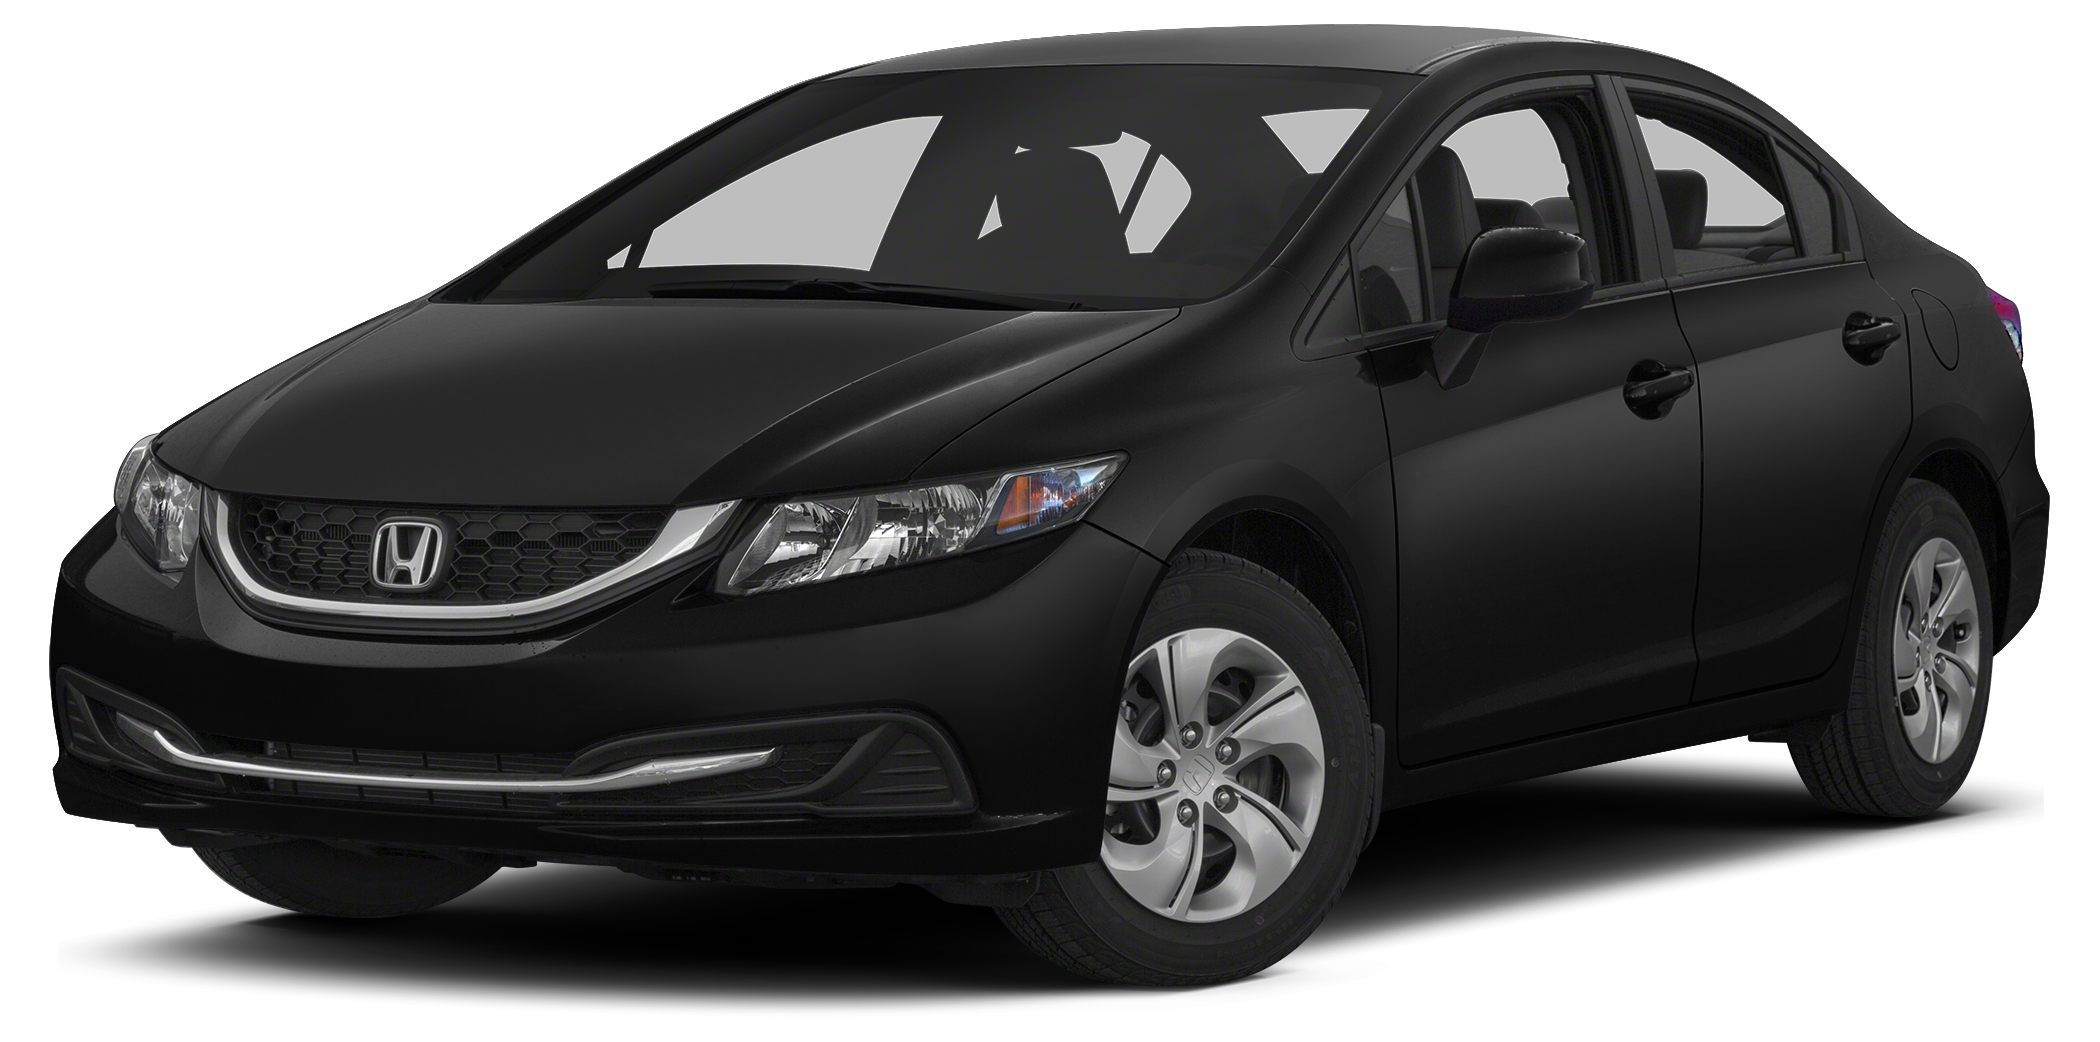 2013 Honda Civic LX 20 YR200K WARRANTY CARFAX ONE OWNER and This is a BHO Car BRANDON HOND